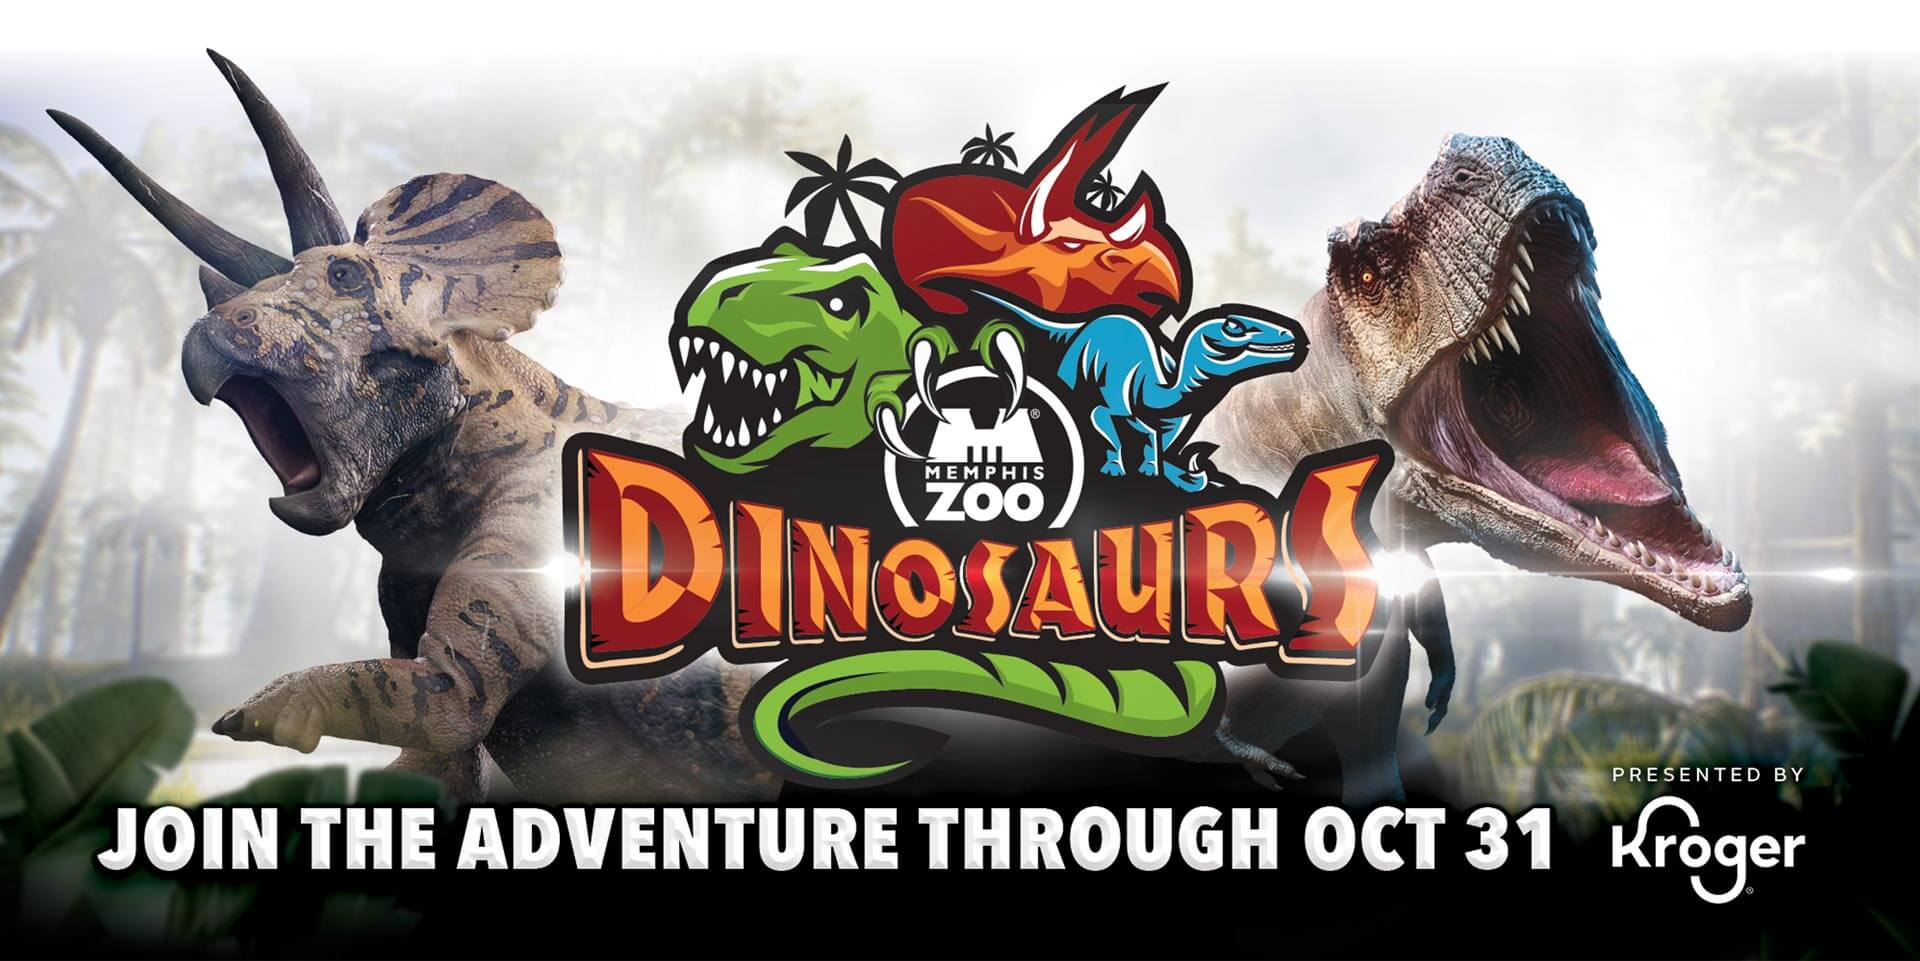 Memphis Zoo Dinosaurs: Join the adventure October 31